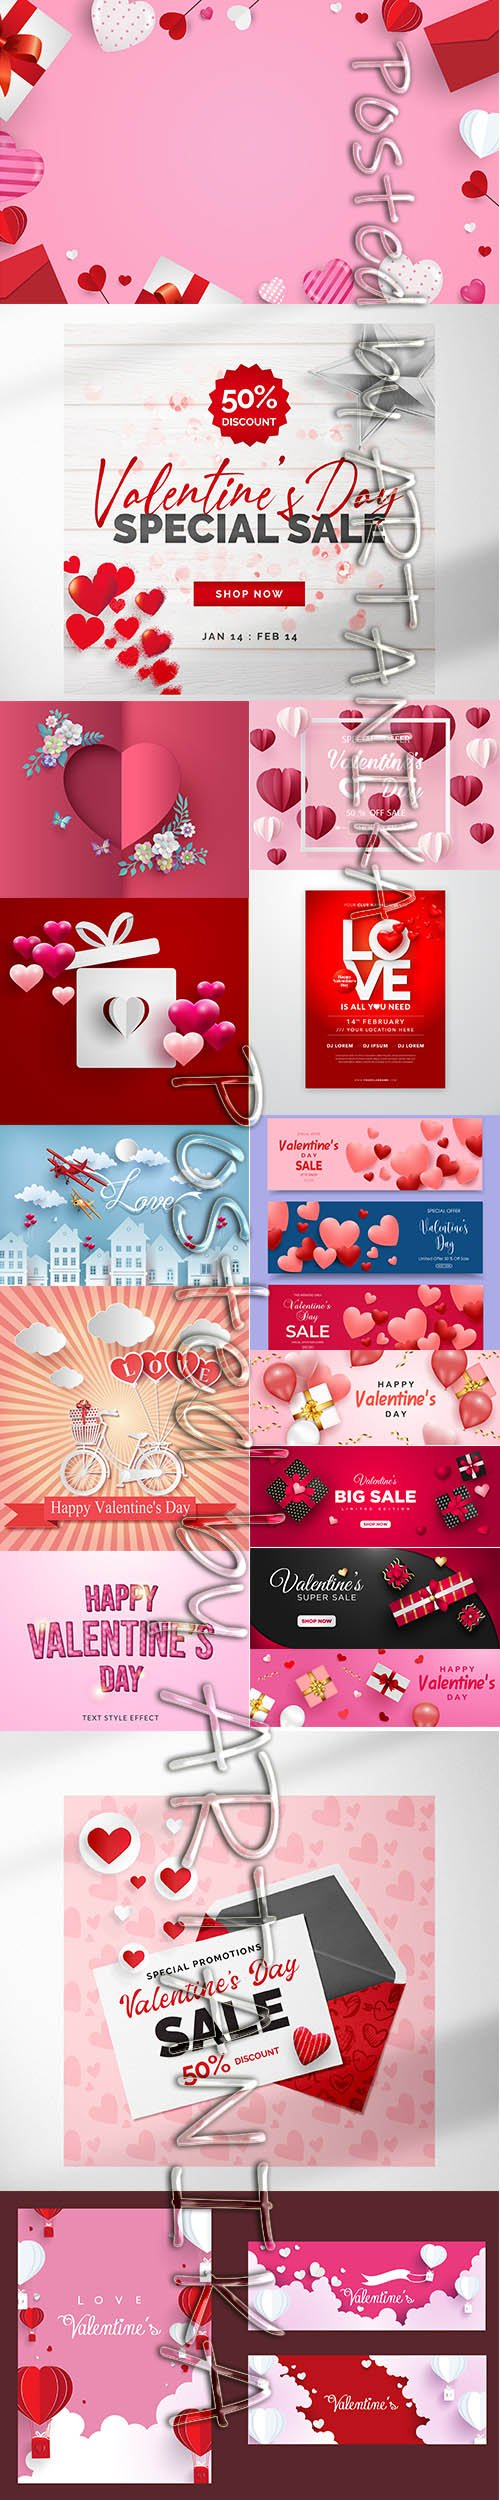 Big Set of Beautiful Valentines Day Illustrations and Cover Template